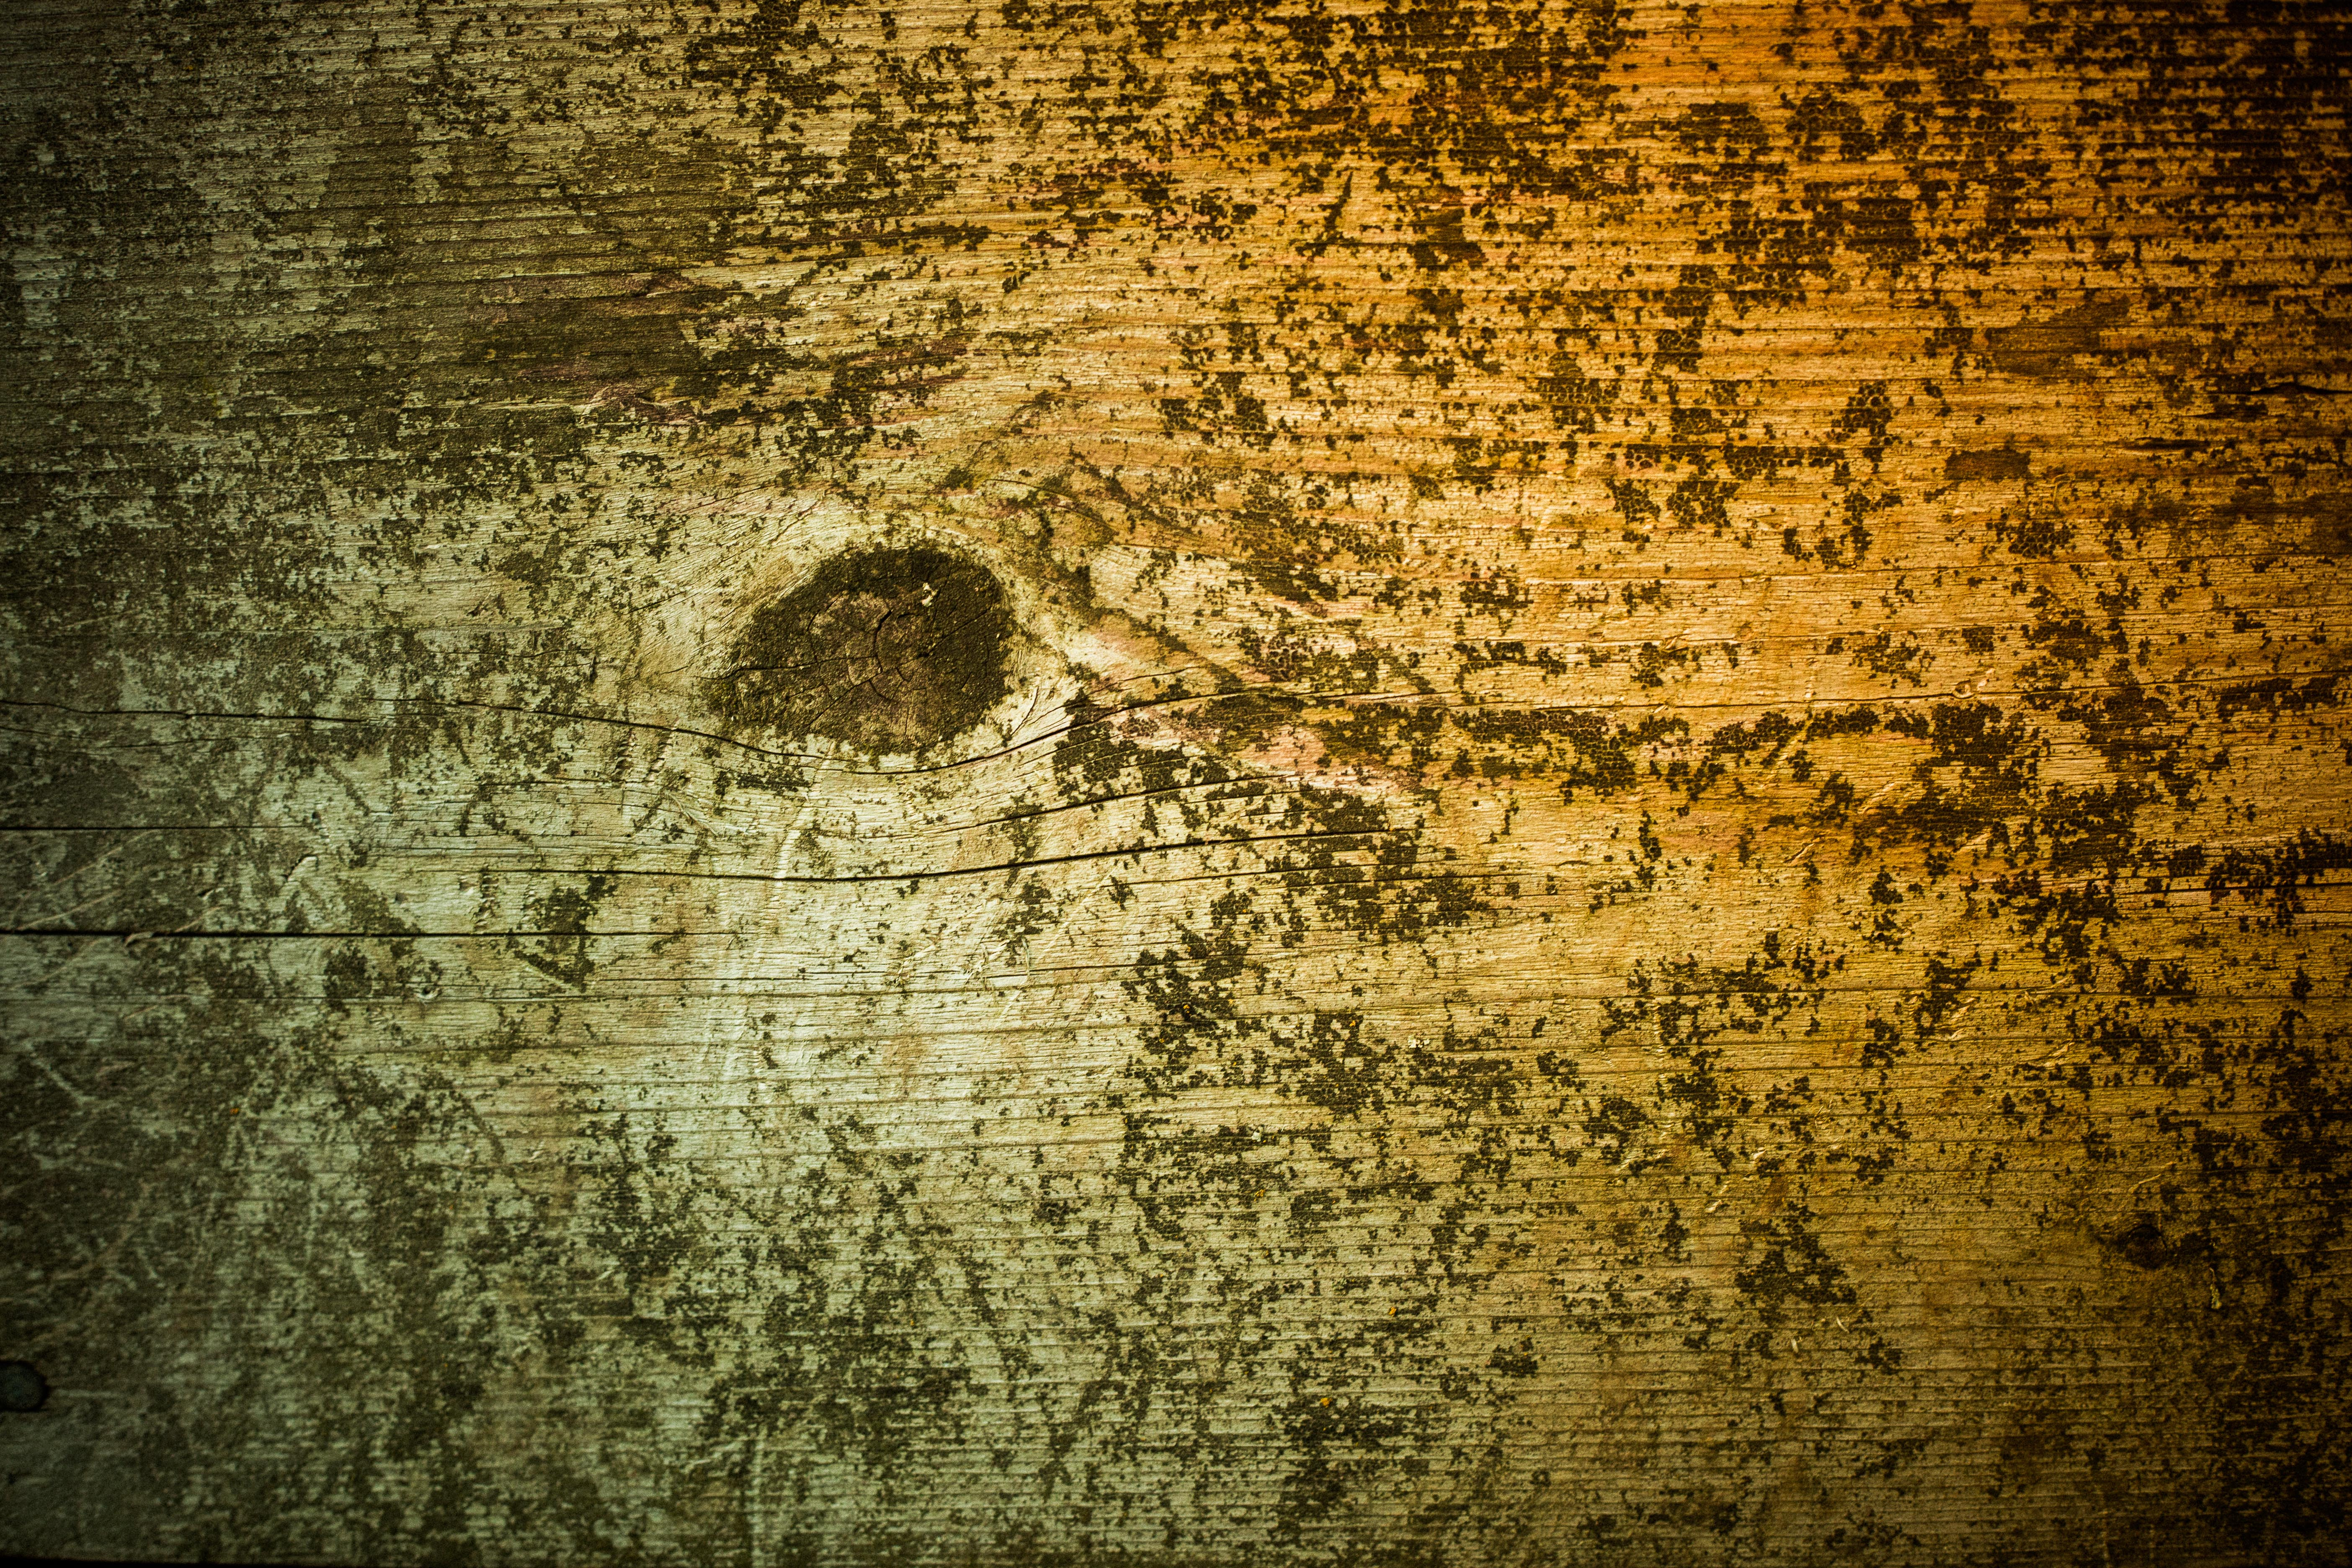 Distressed Background Image